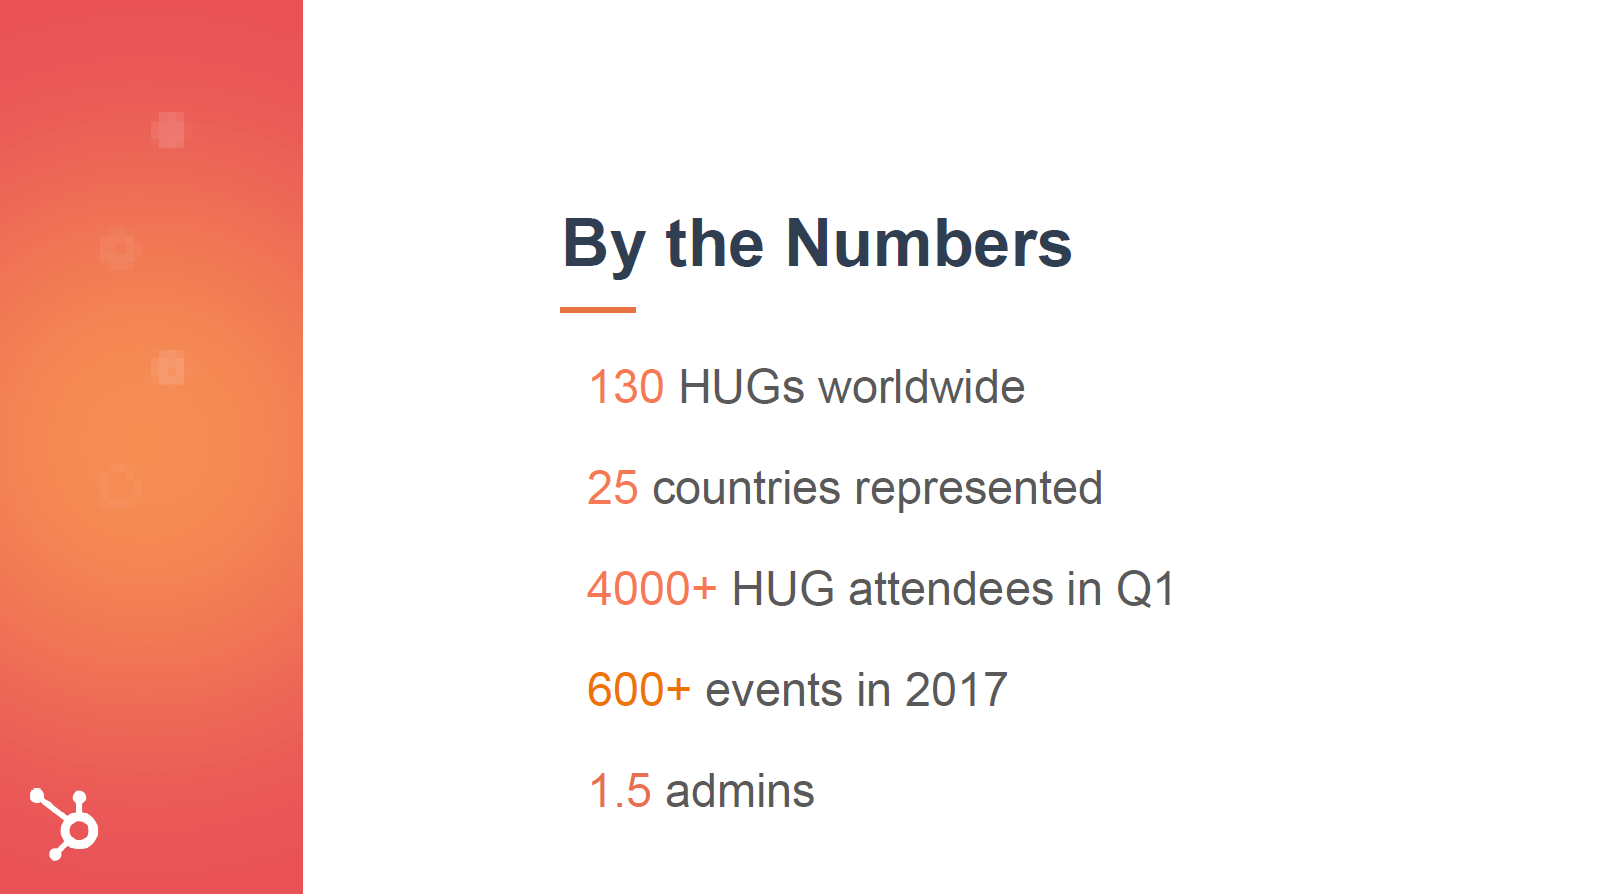 hug-hubspot-in-numbers